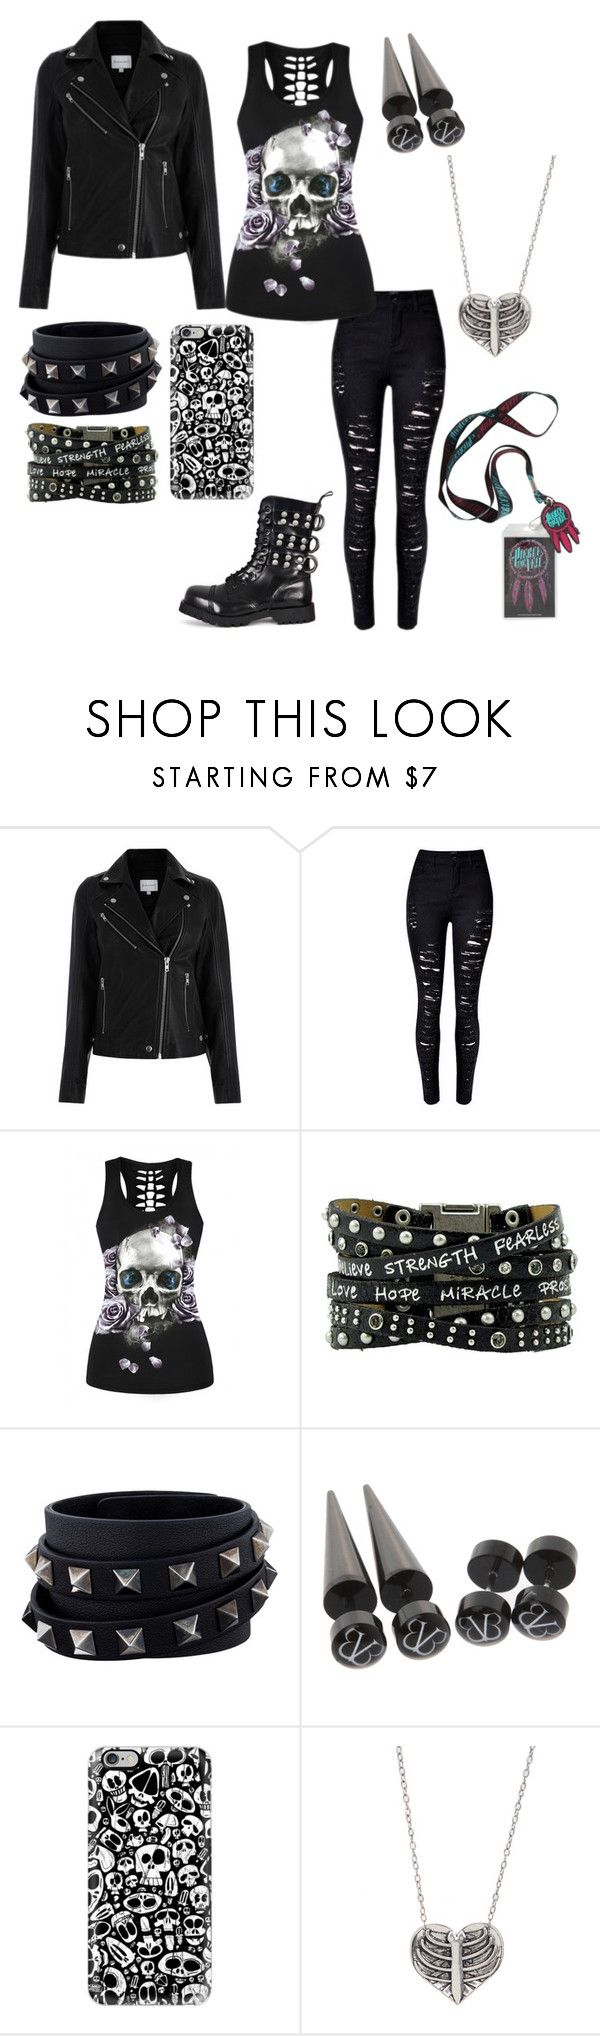 """""""Untitled #433"""" by alexandria-wolf-palayeroyale ❤ liked on Polyvore featuring WithChic, Valentino, Hot Topic and Casetify"""